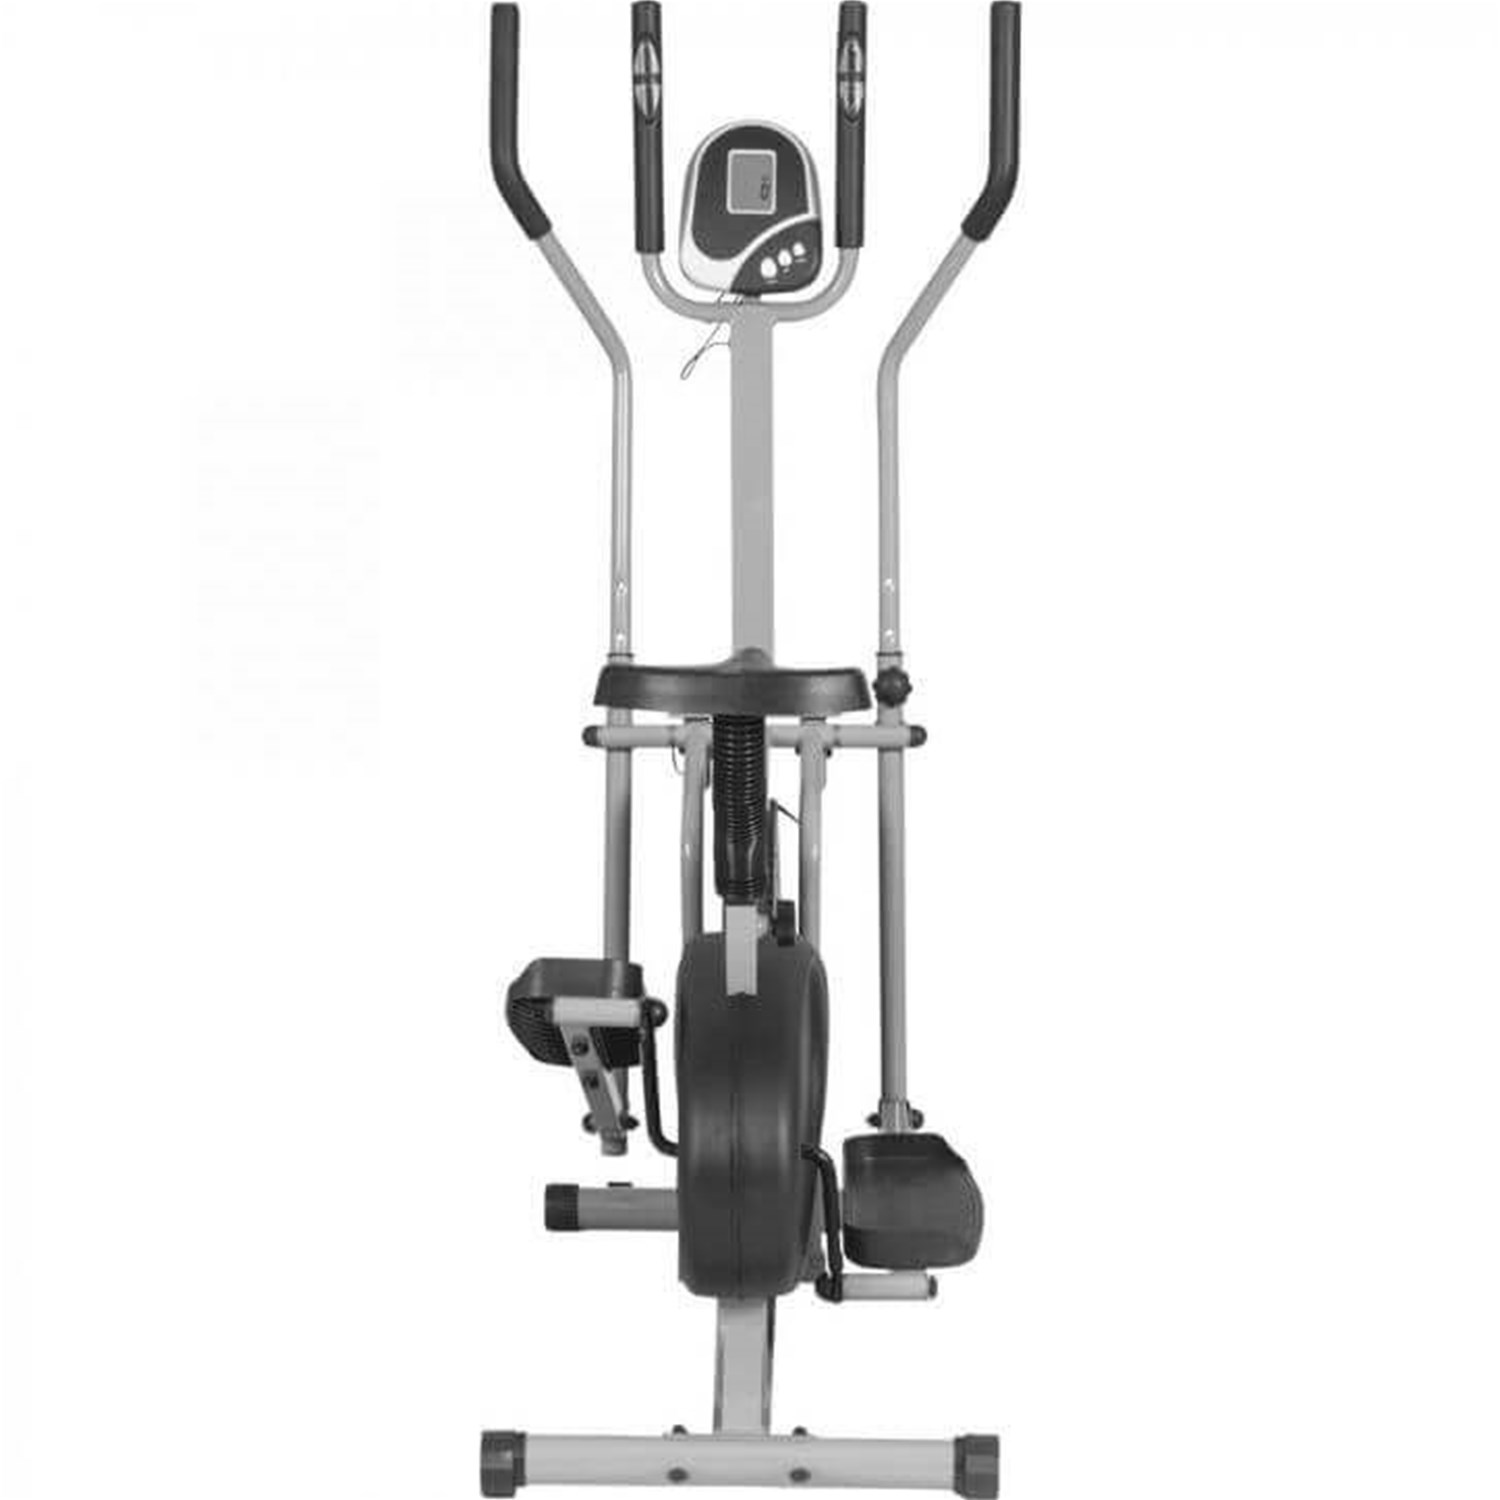 Crosstrainer Eliptical Bike - 3